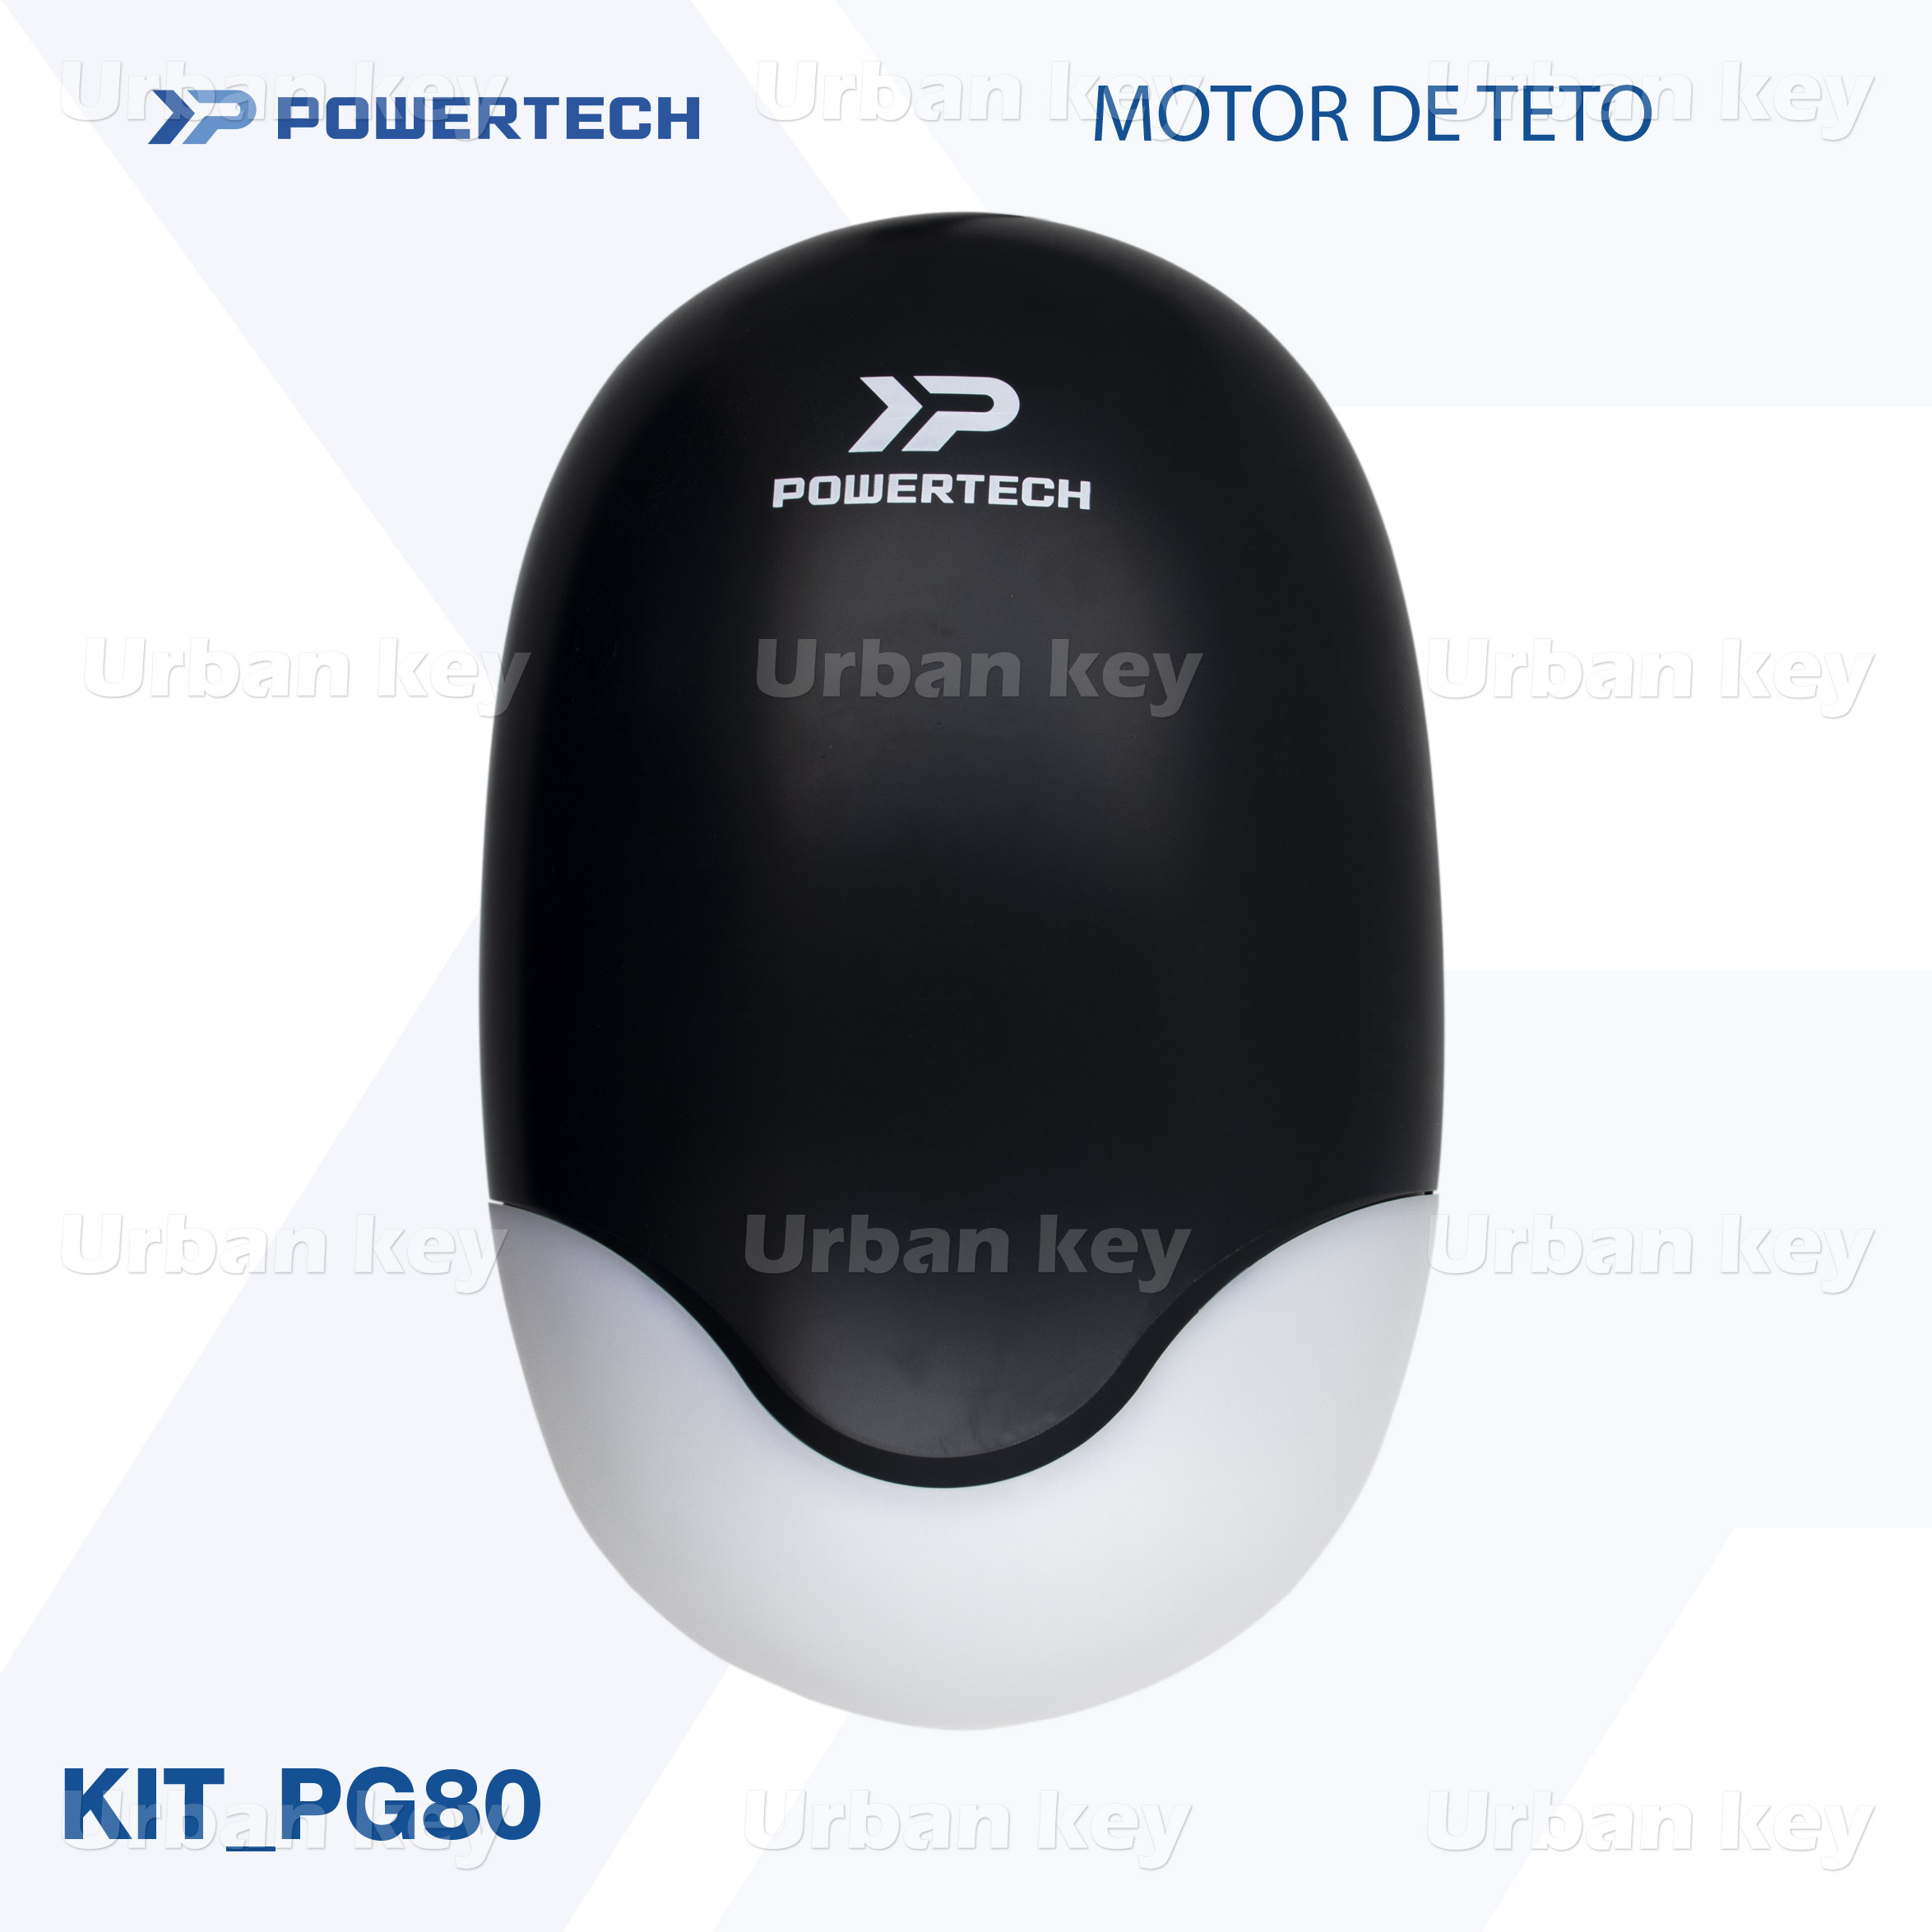 KIT MOTOR DE TETO PG80 POWERTECH